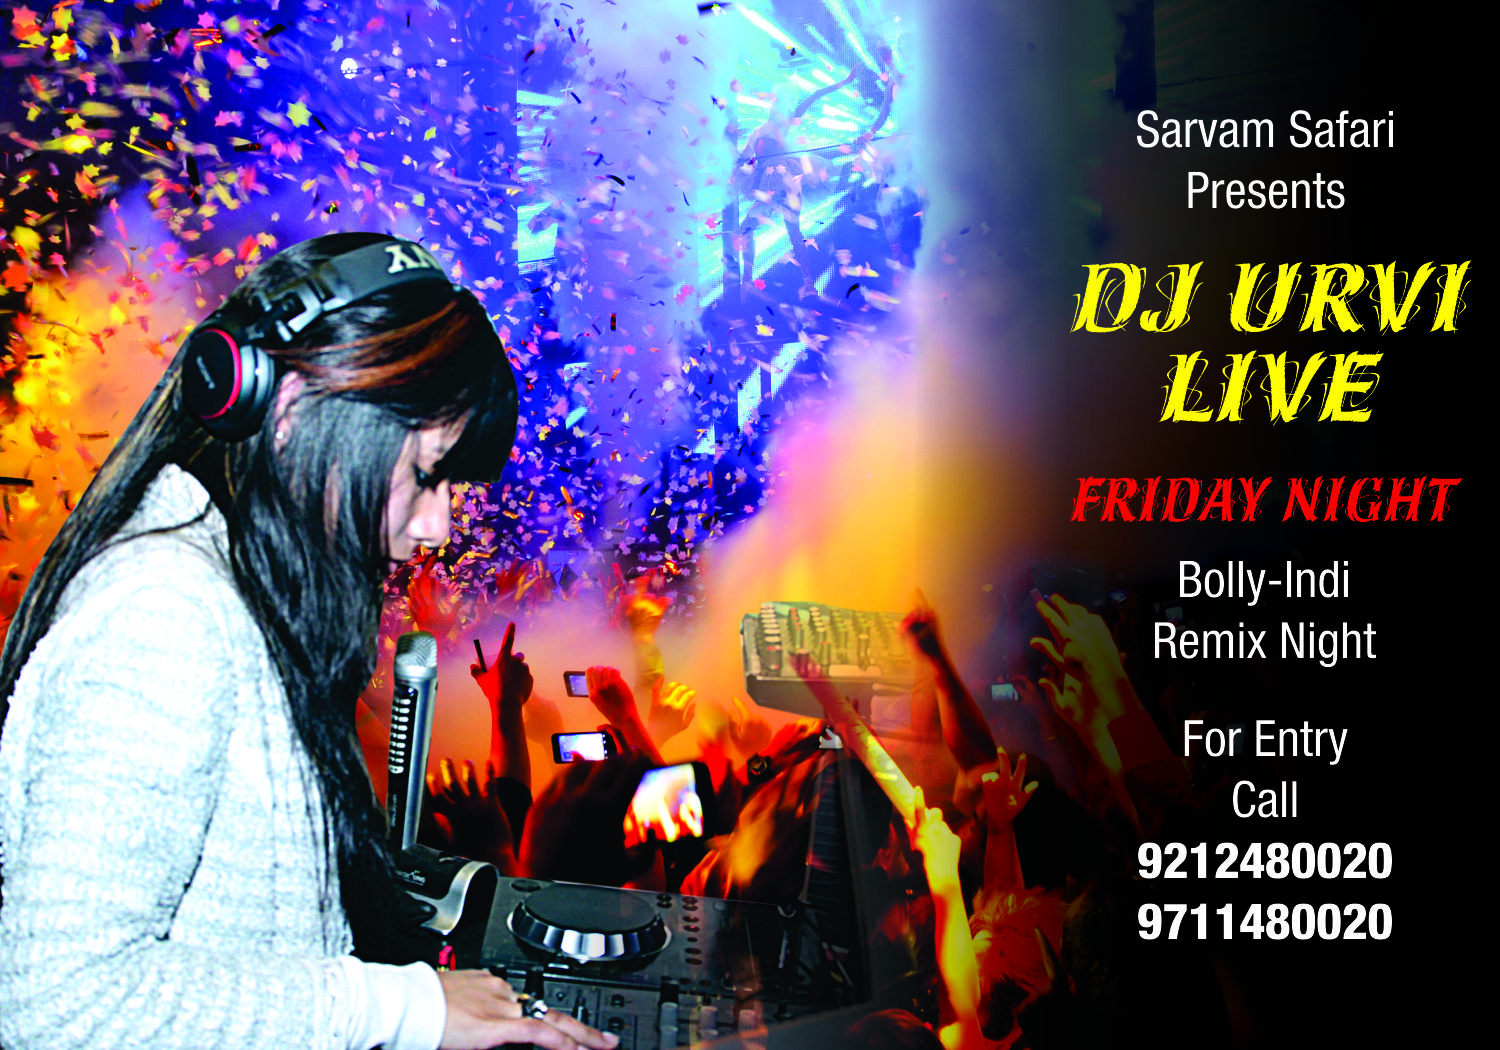 Bolly-Indi Remix Nite with DJ URVI Live